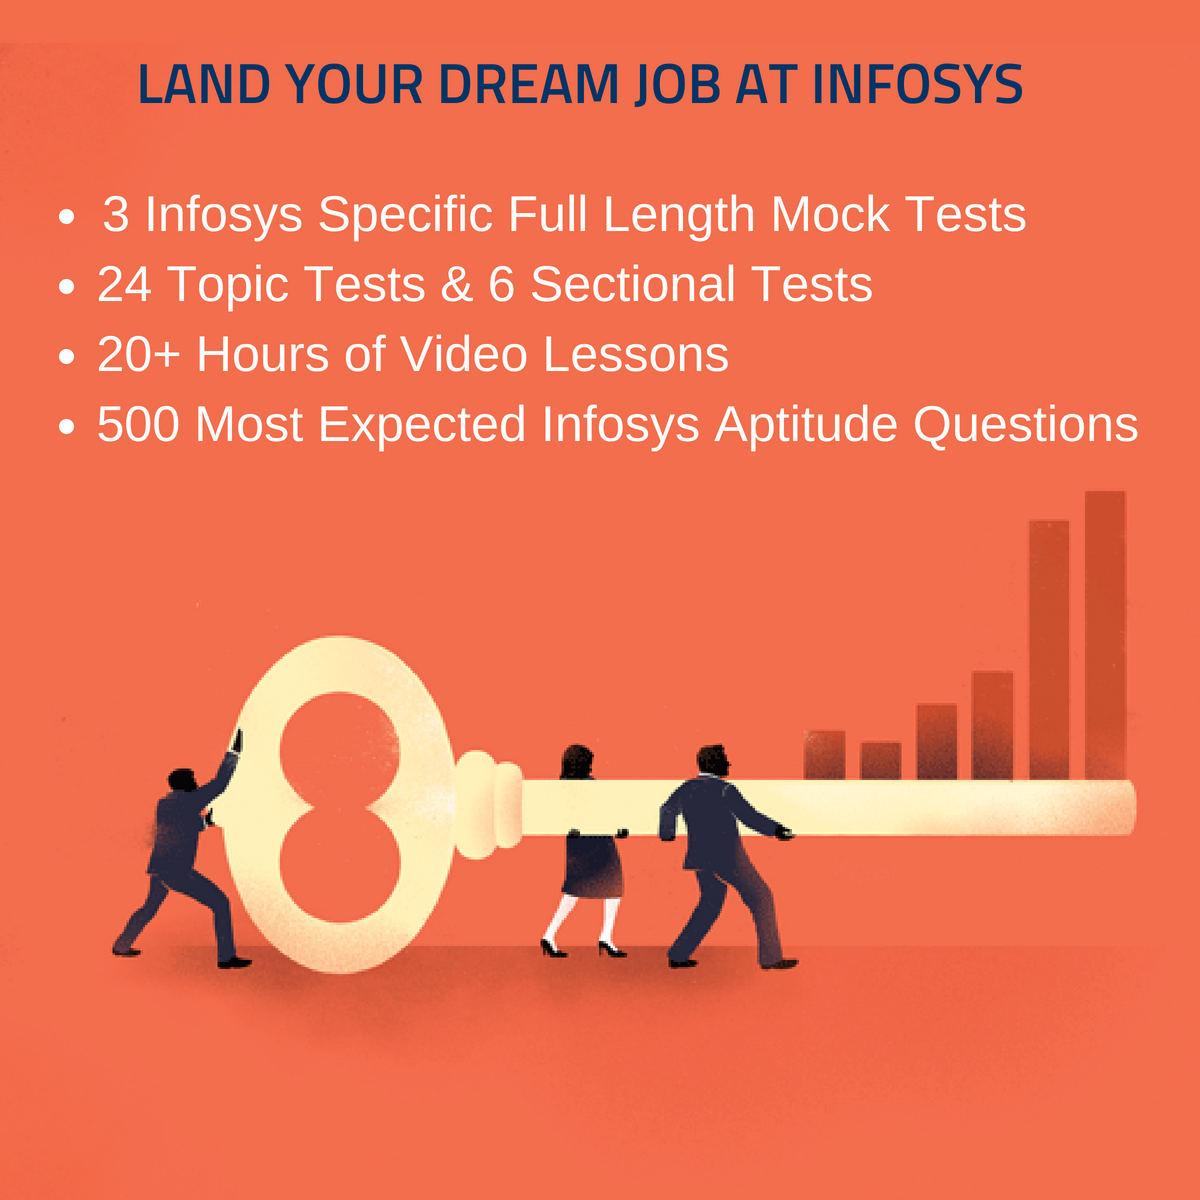 How to Get Placed in Infosys - Most Important Concepts